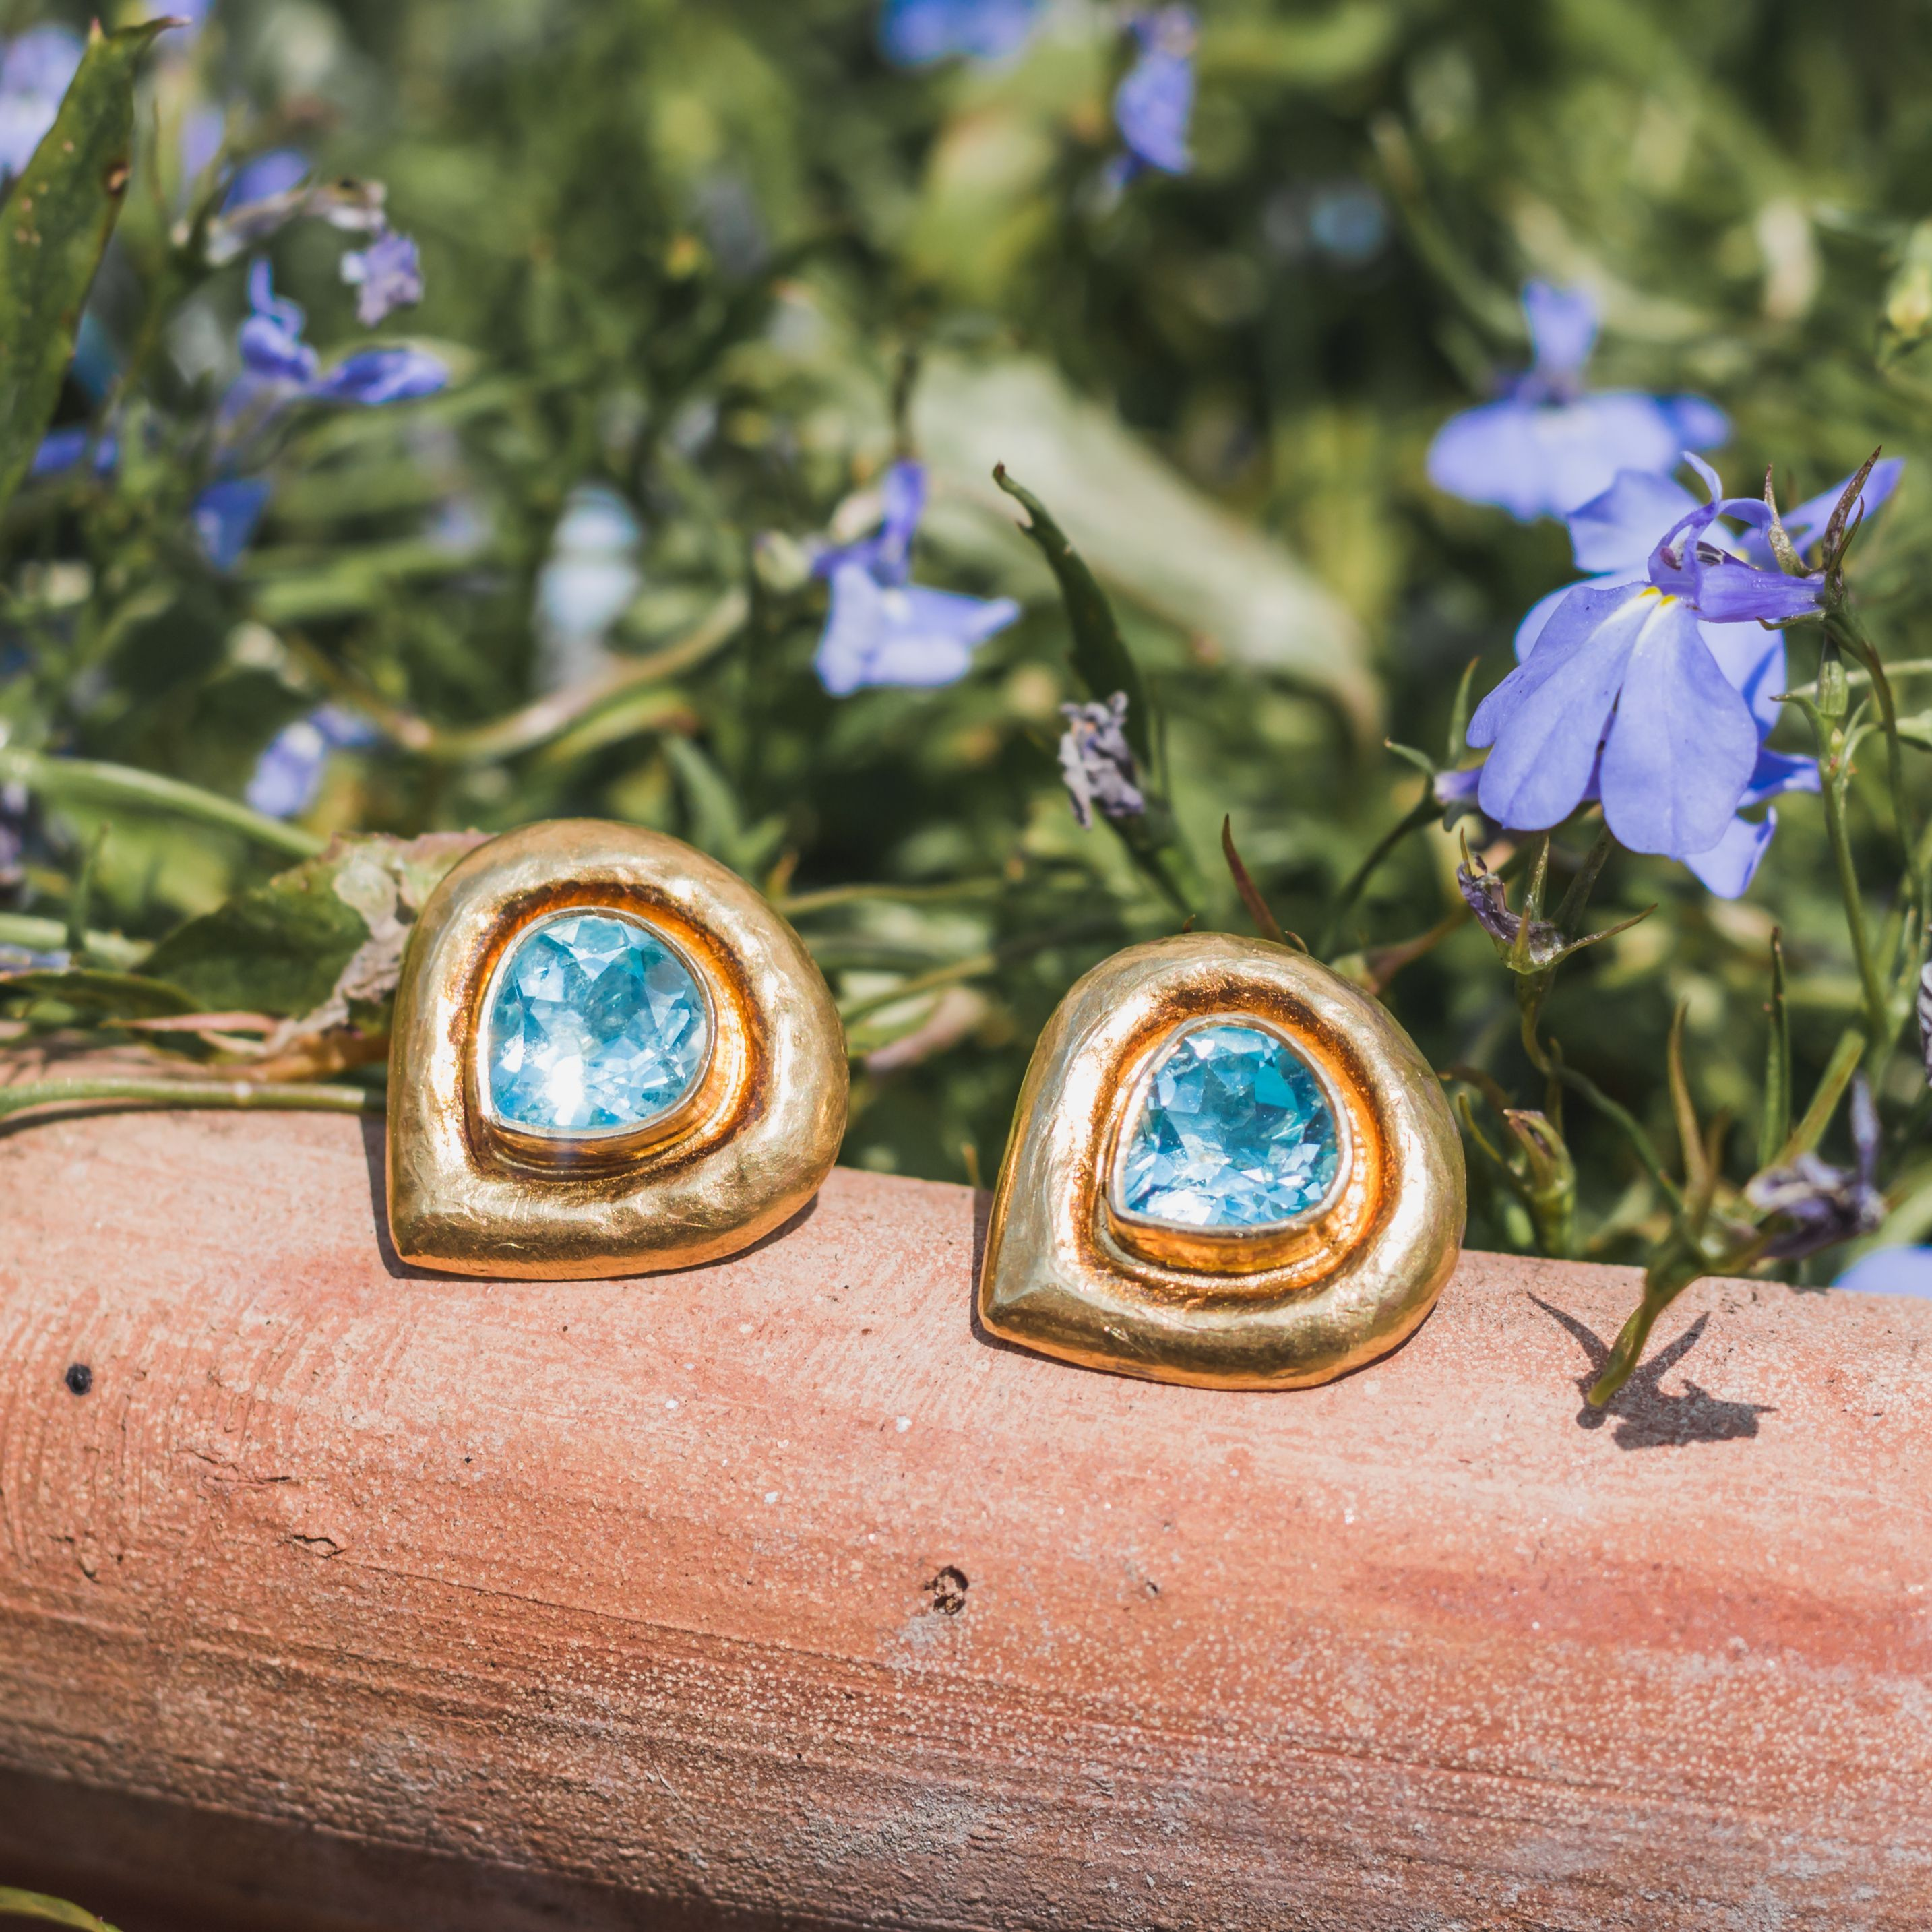 I took these Aquamarine earsuds out in the UK sun, and